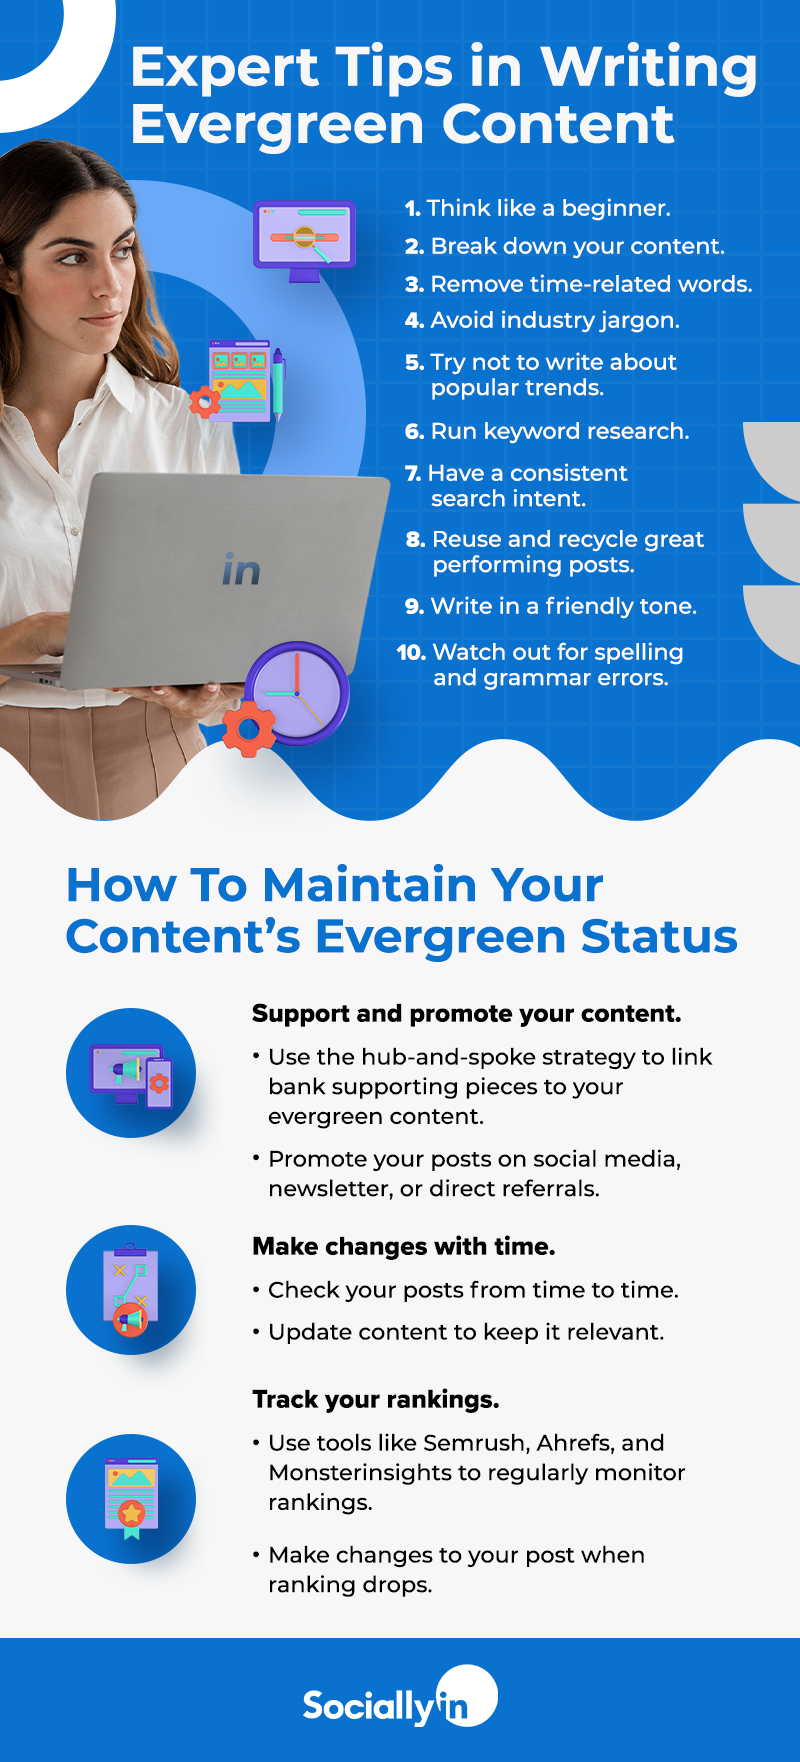 What Is Evergreen Content And How to Maintain Evergreen Content Status